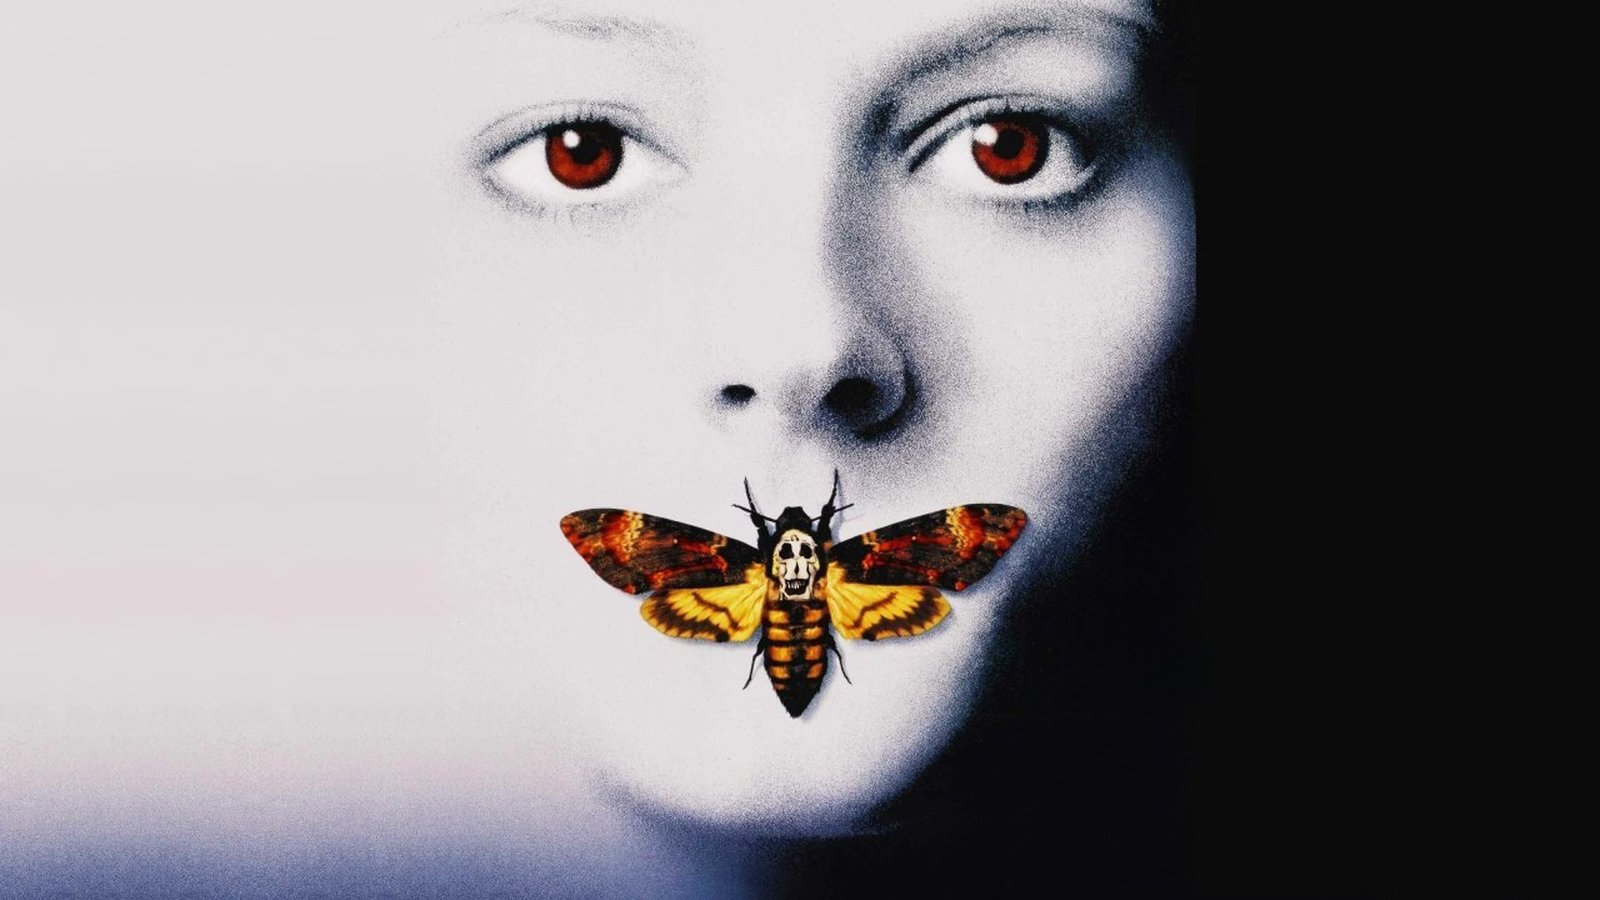 / The Silence of the Lambs